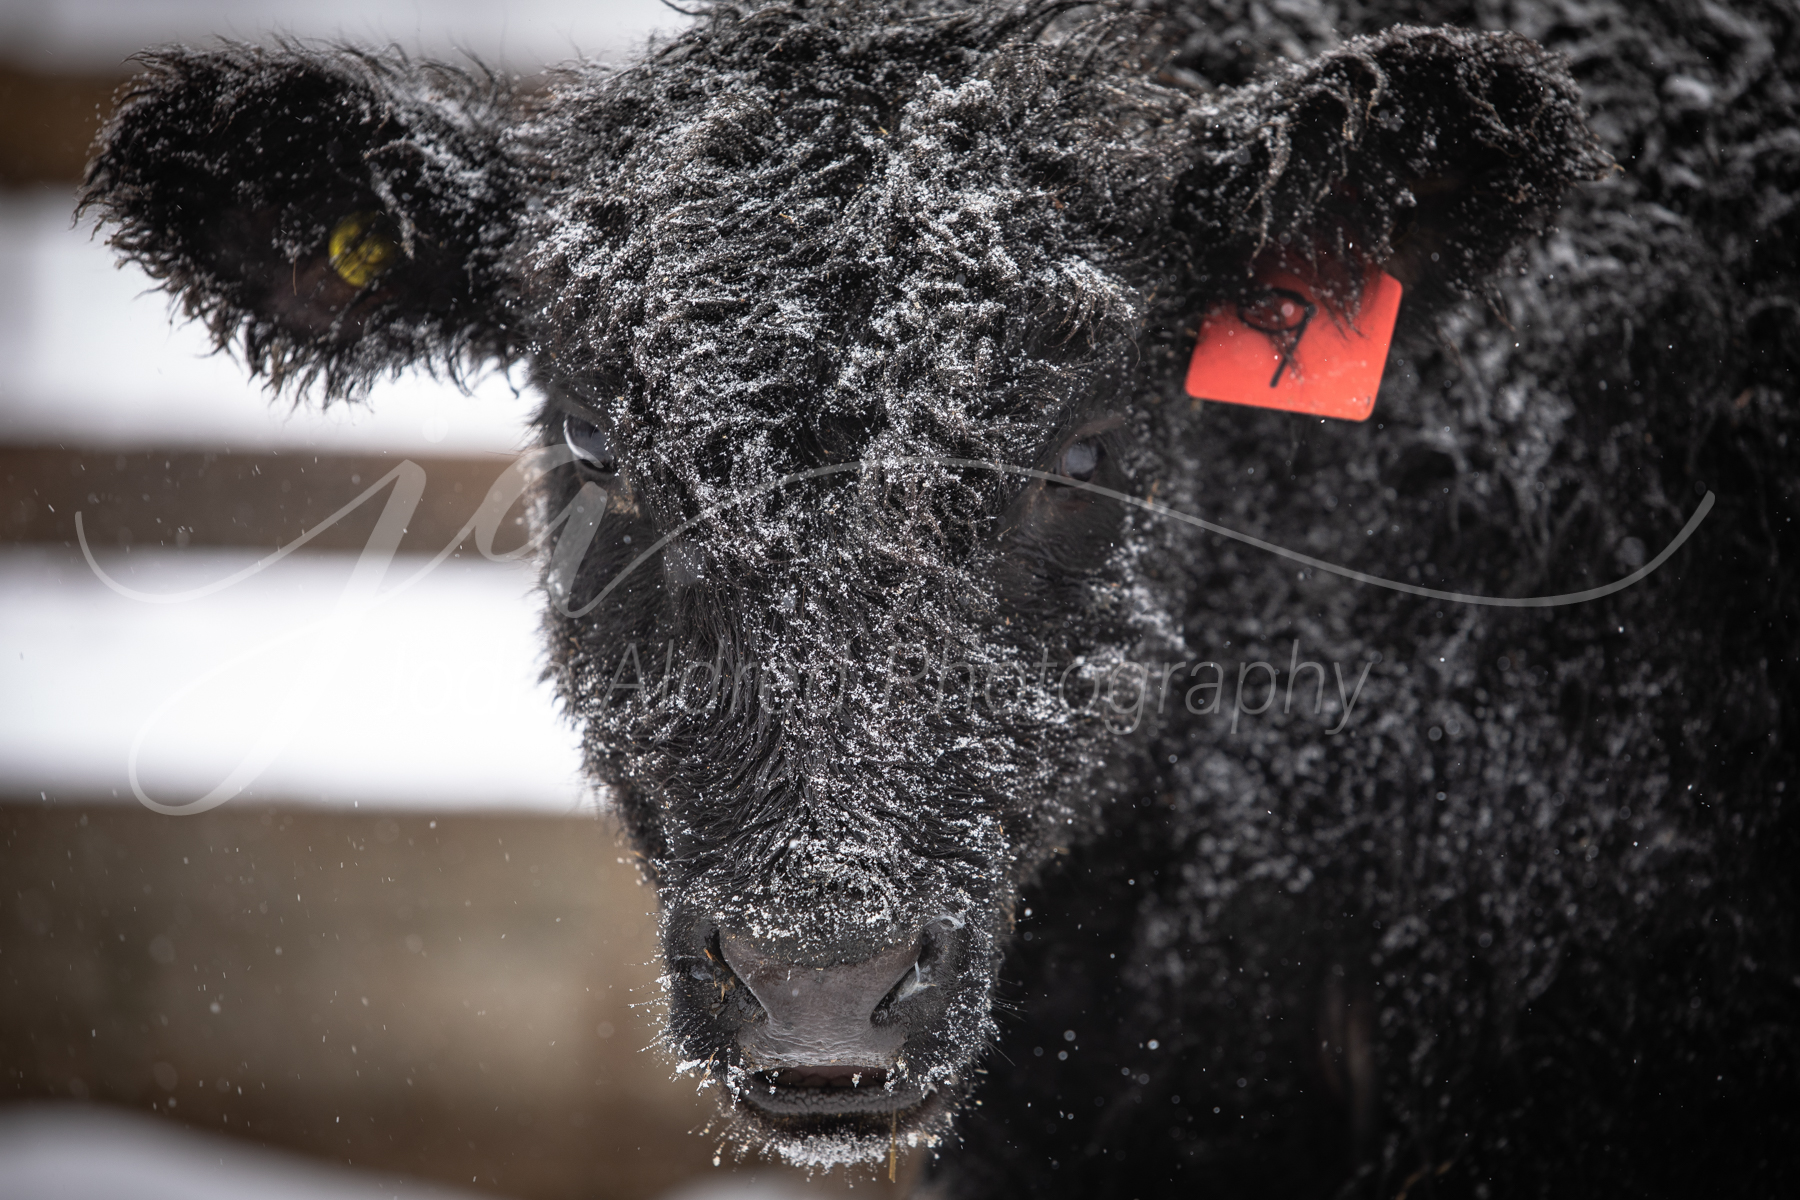 Jodie-Aldred-Photography-Ontario-Agriculture-Photographer-Farm-Outdoors-Nature-Middlesex-Elgin-Chathma-Kent-Huron-Photographer-steer-cow-winter-cattle-snow.jpg